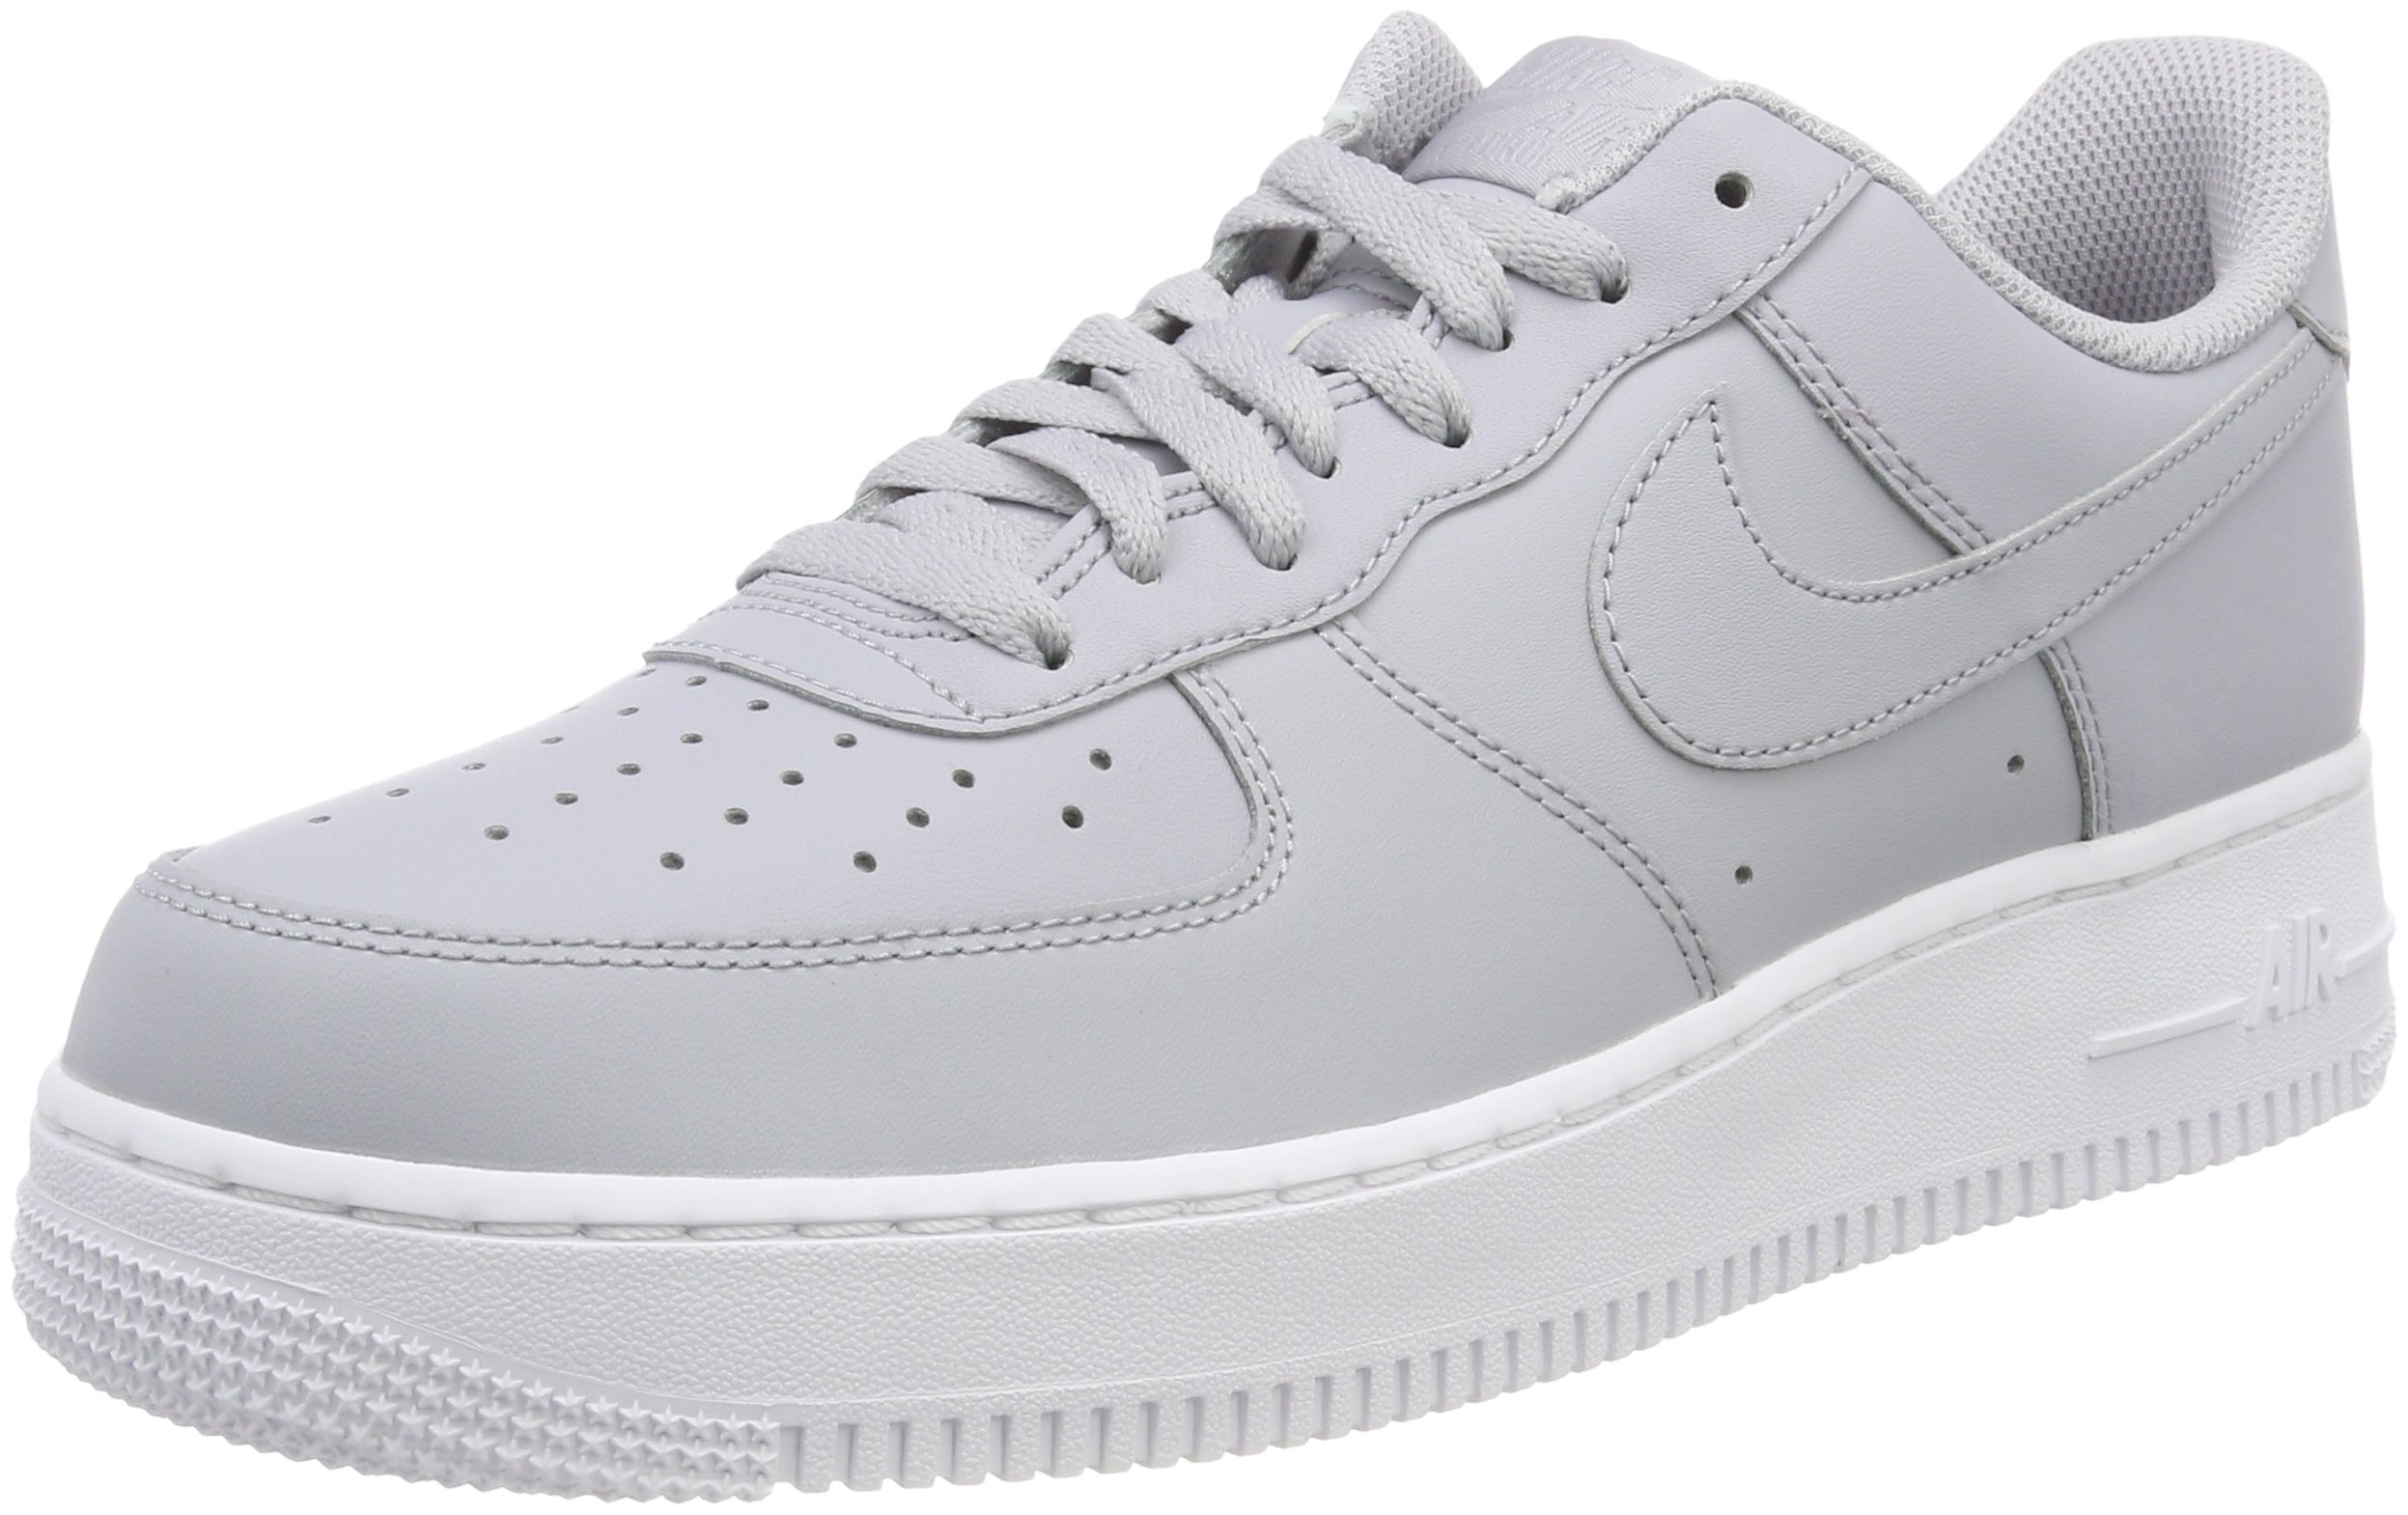 cc2cc0467df Nike Mens Air Force 1 Low 07 Basketball Shoes Wolf Grey/White AA4083-010  Size 11.5